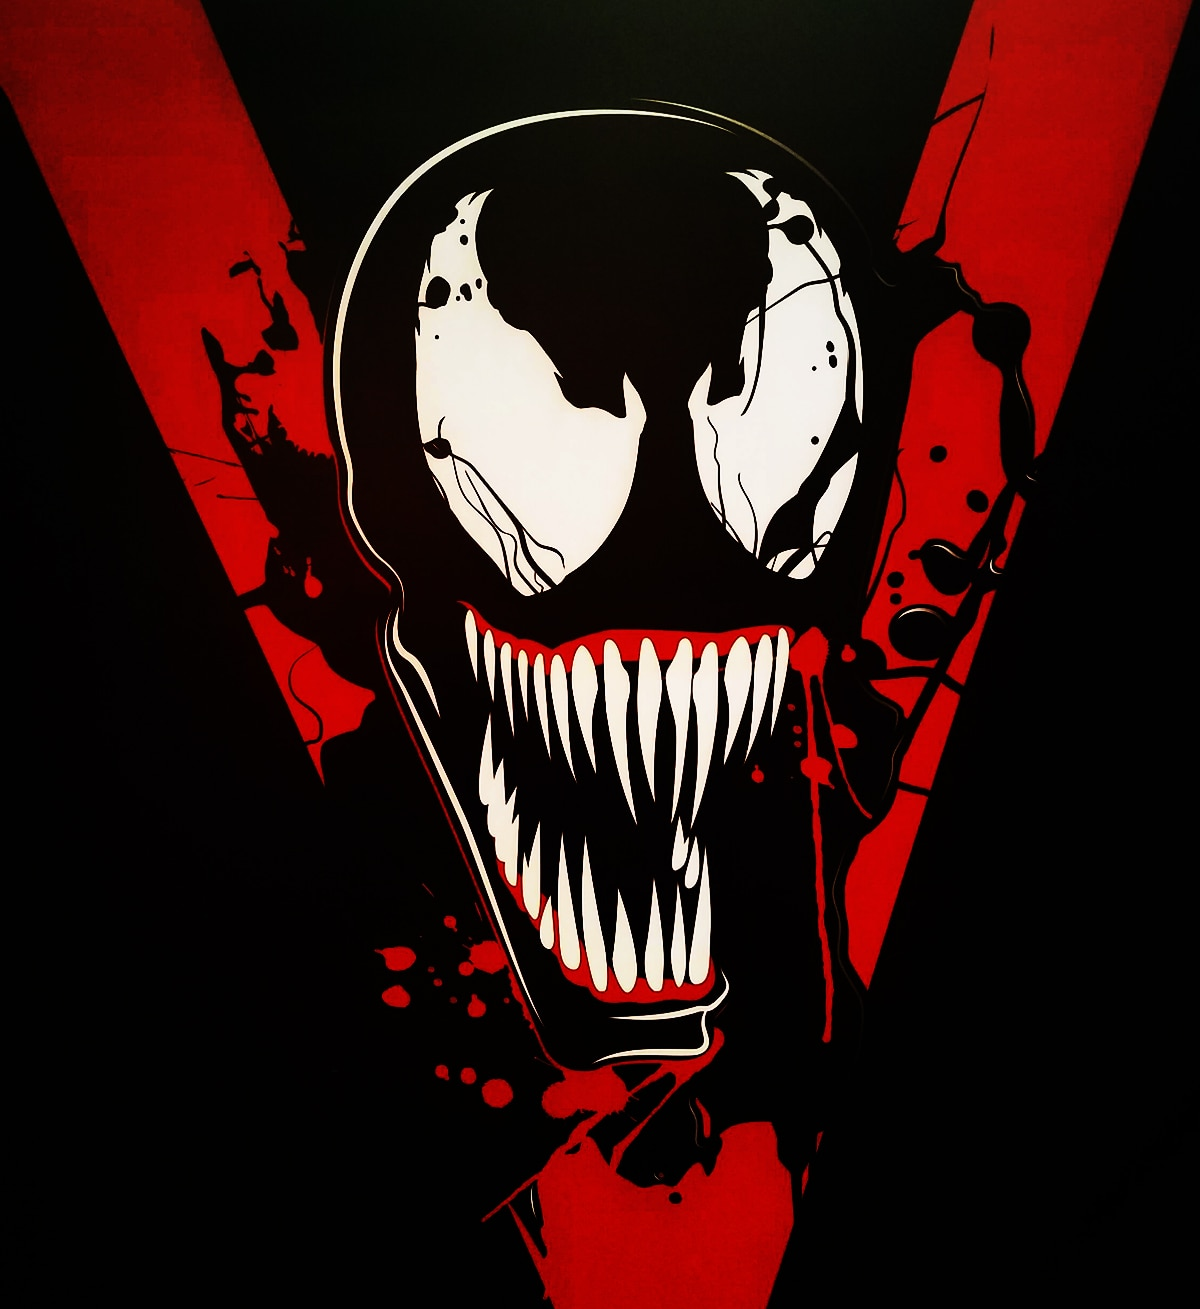 venom poster - Early First Look at CG Model for Venom?